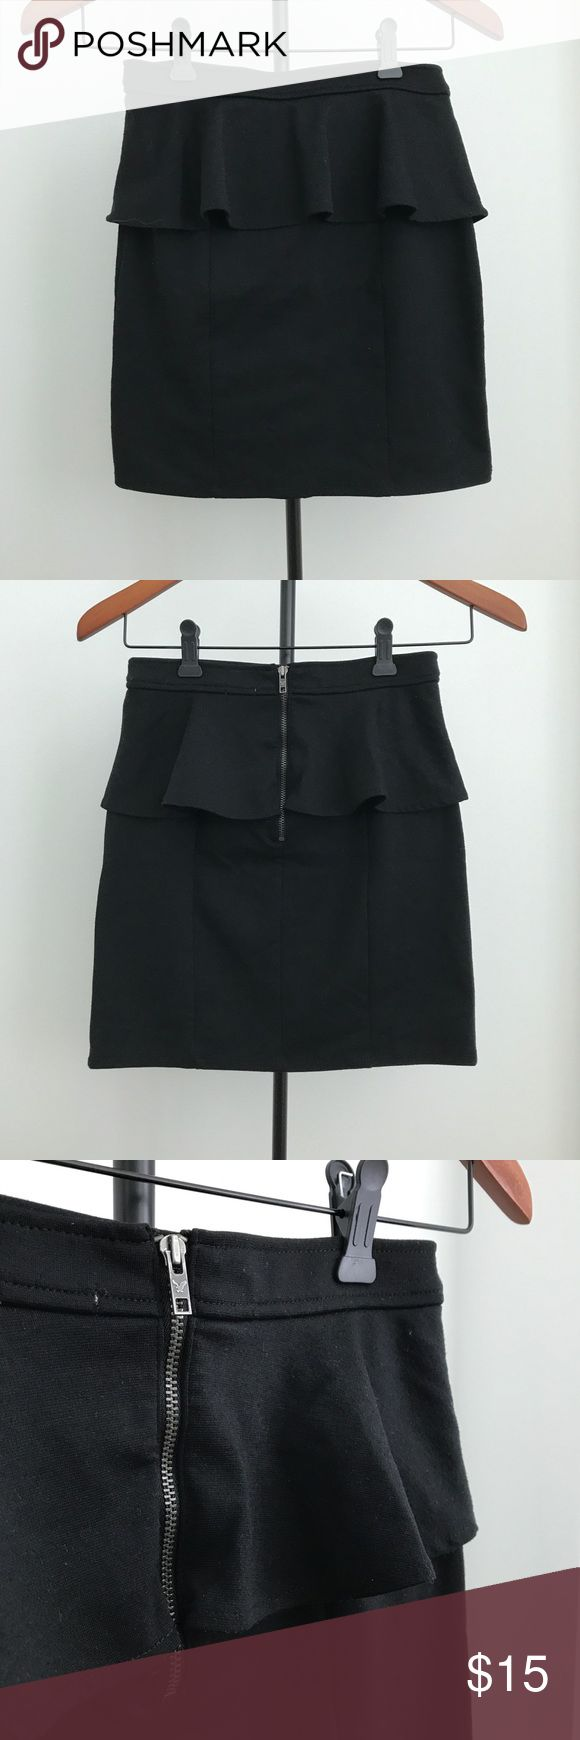 American Eagle Outfitters Black Peplum Skirt AEO high waist bodycon pencil mini peplum skirt. Pair with a crop top for a casual, chic look or a shirt/ t-shirt for a more professional look.  Excellent condition. Size 0 Length: 15in; Waist: 25in 70% Polyester, 25% Rayon, 5% Spandex American Eagle Outfitters Skirts Pencil